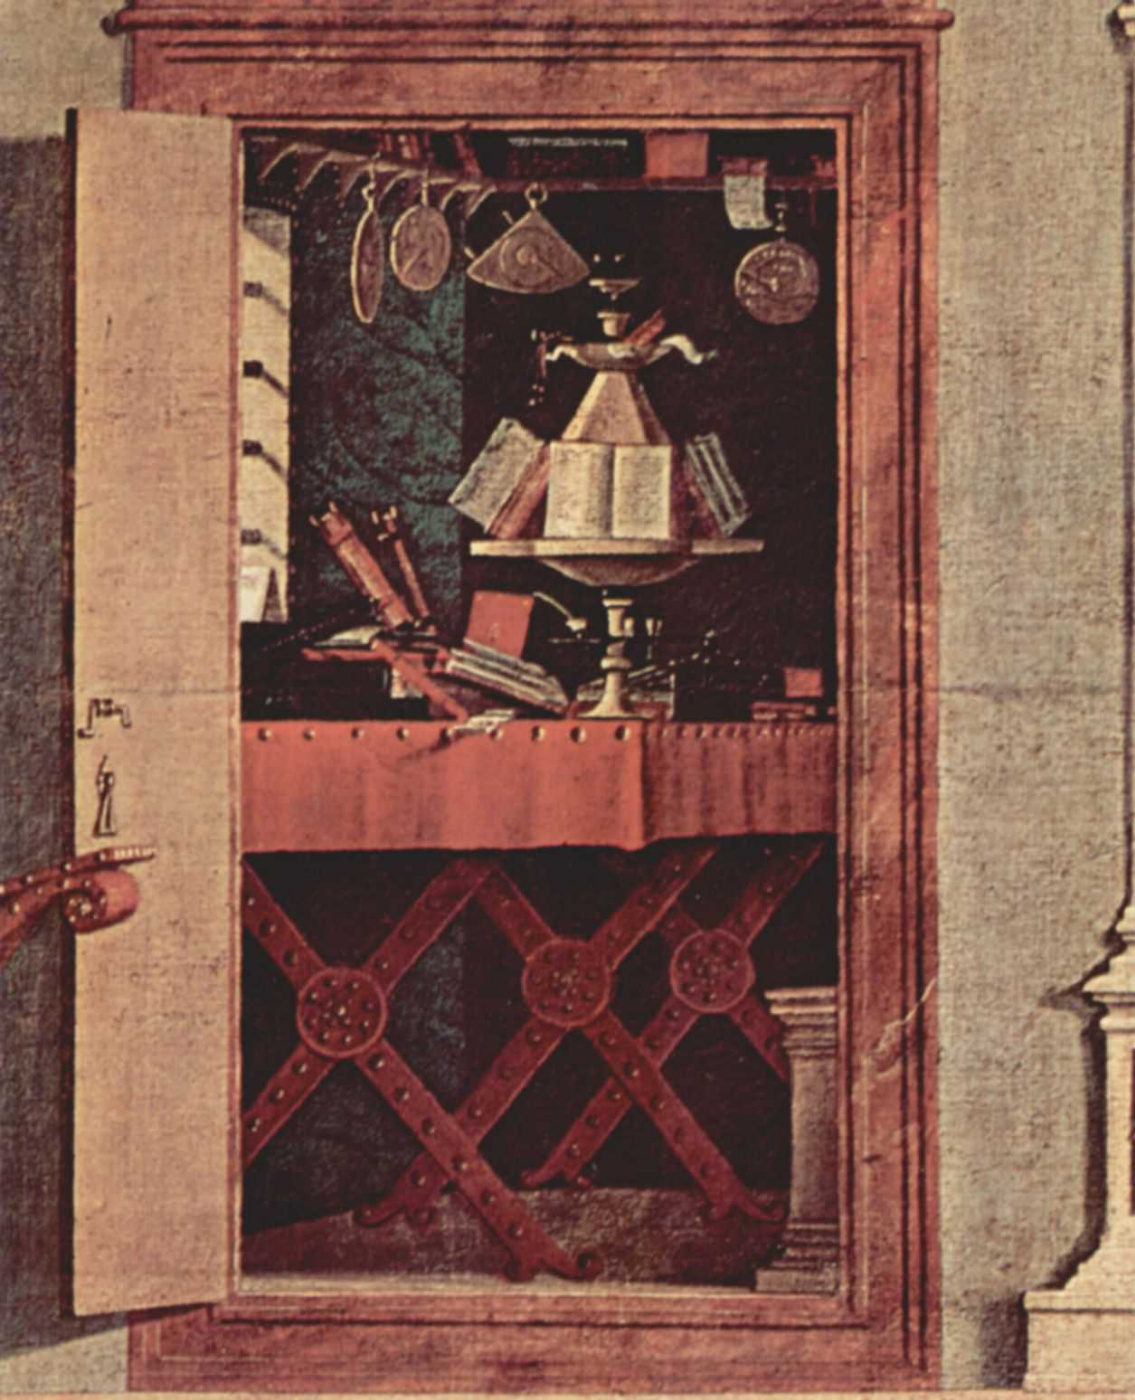 Vittore Carpaccio. The cycle of paintings of the chapel of the Scuola di San Giorgio Schiavoni. The scene of the vision of St. Augustine. Detail